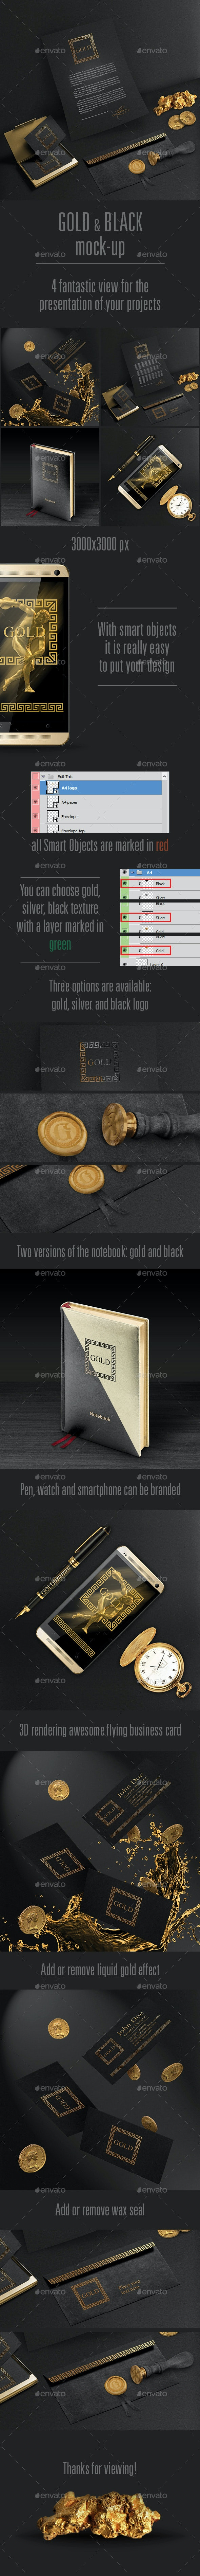 Gold and Black Stationary / Branding Mock-Up - Stationery Print